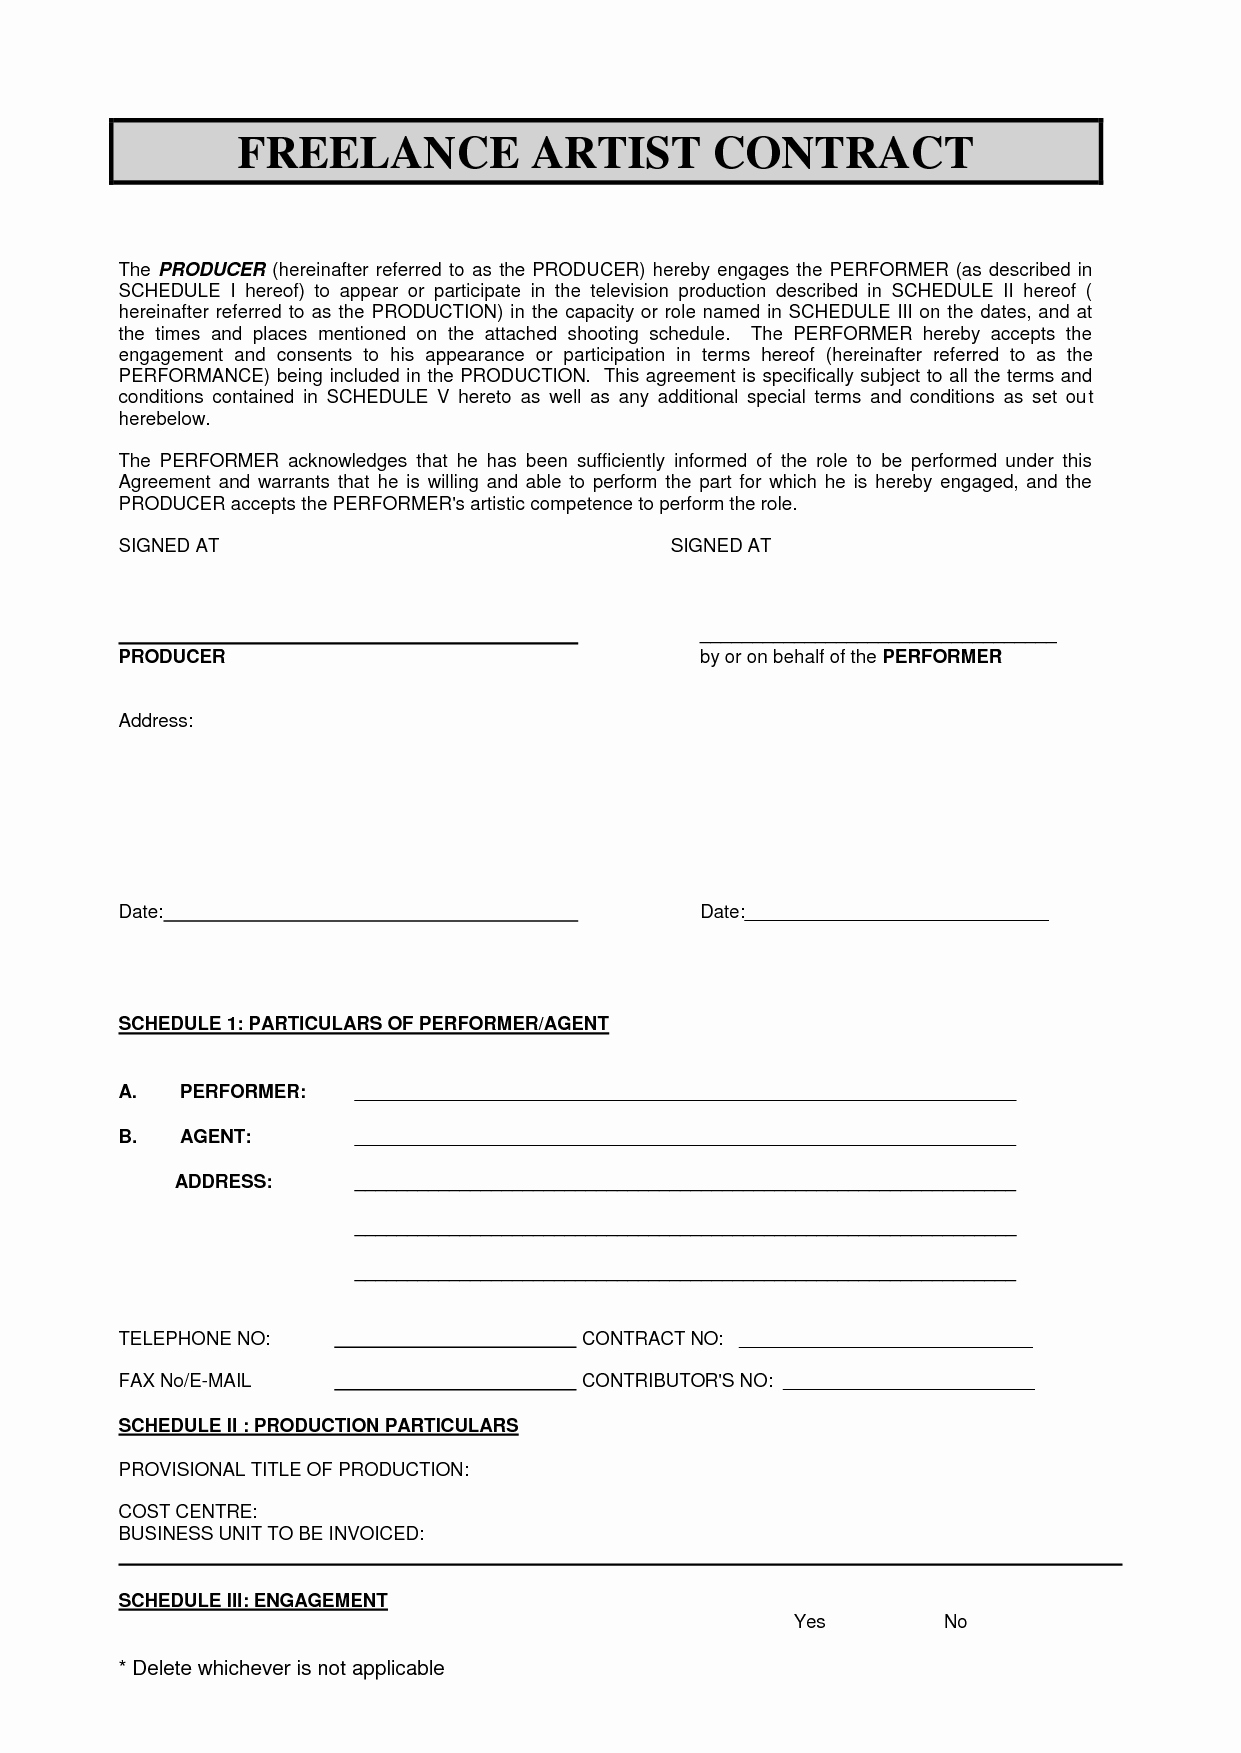 Sabc Contract 2010 Pdf Freelance Artist Contract by